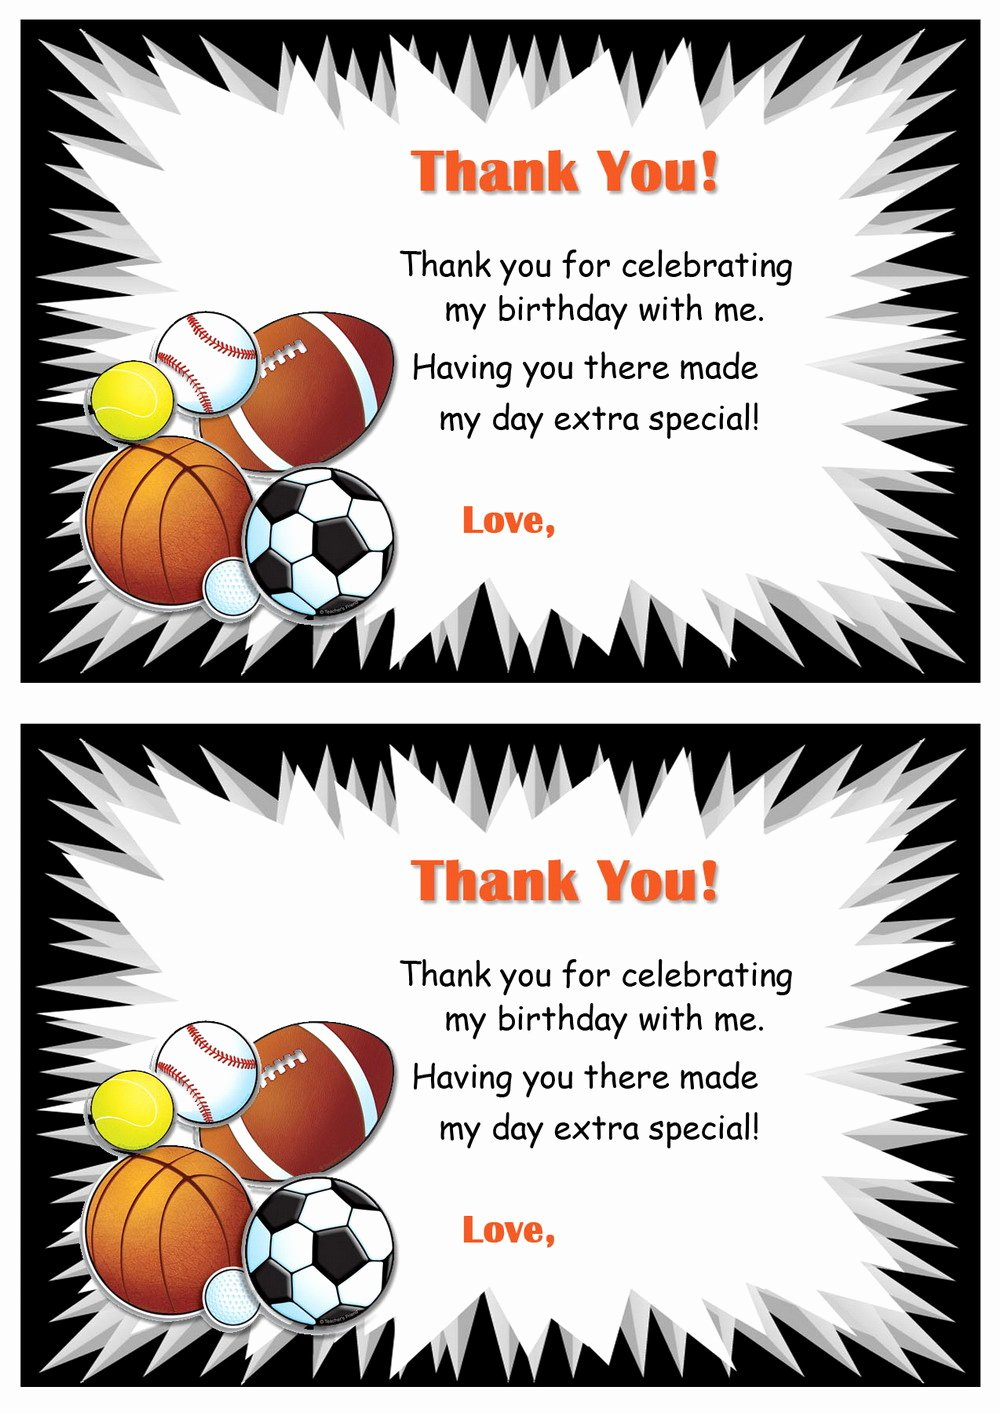 Sports Thank You Cards Lovely Sports Thank You Cards